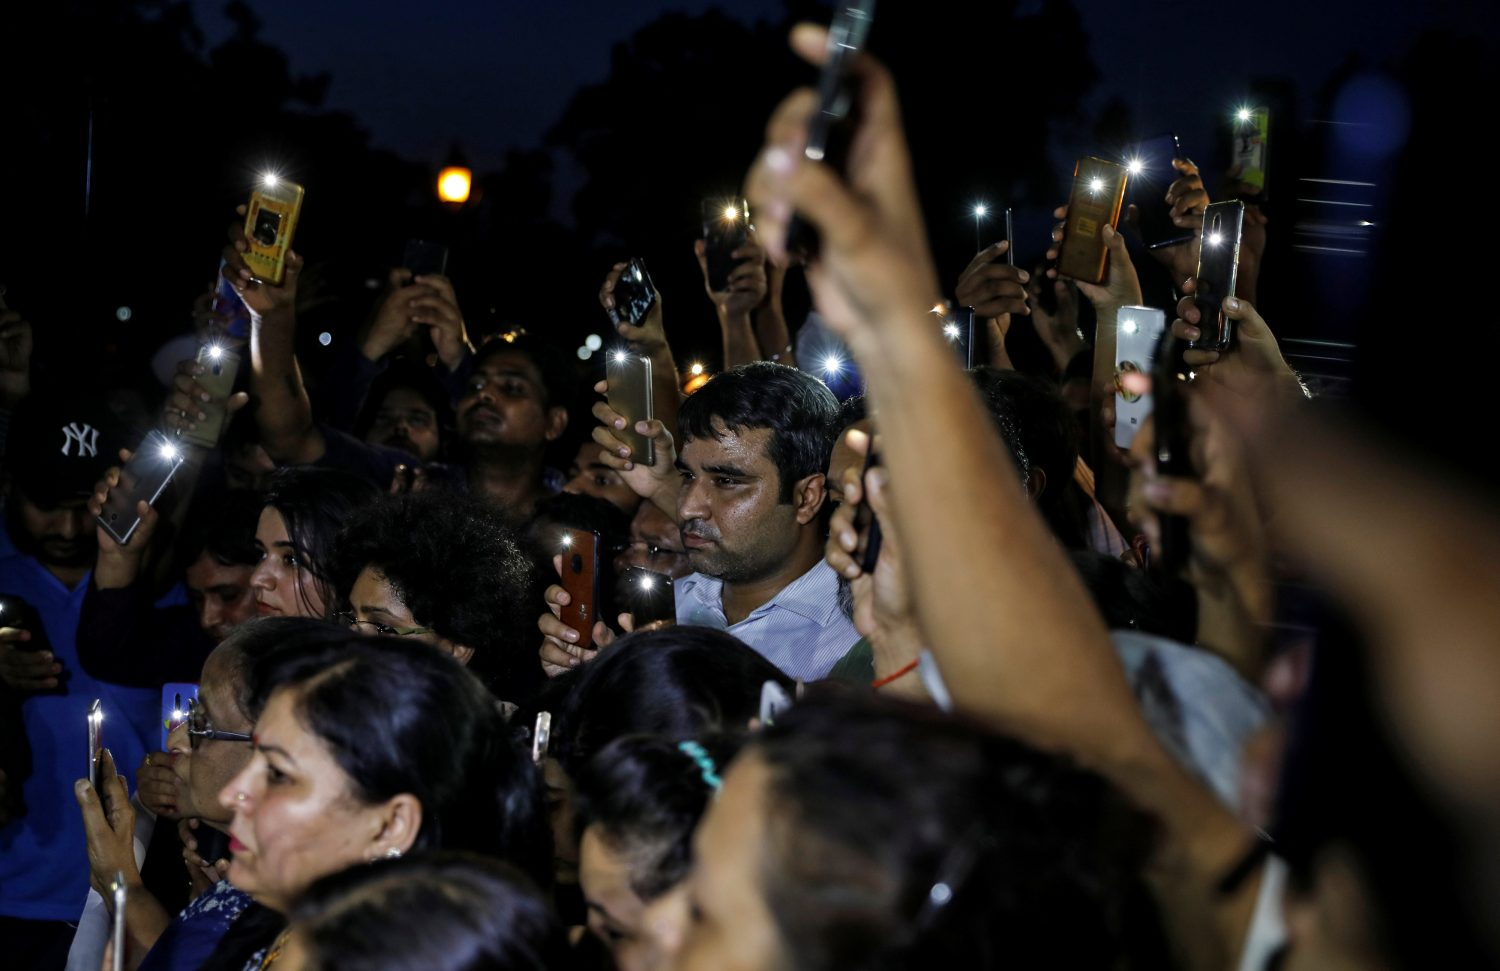 People hold their mobile phone torches as they take part in a protest demanding investigation in a highway collision in which a woman who is fighting a rape case against a legislator of the ruling Bharatiya Janata Party (BJP) was critically injured, in New Delhi, India, July 29, 2019. REUTERS/Danish Siddiqui